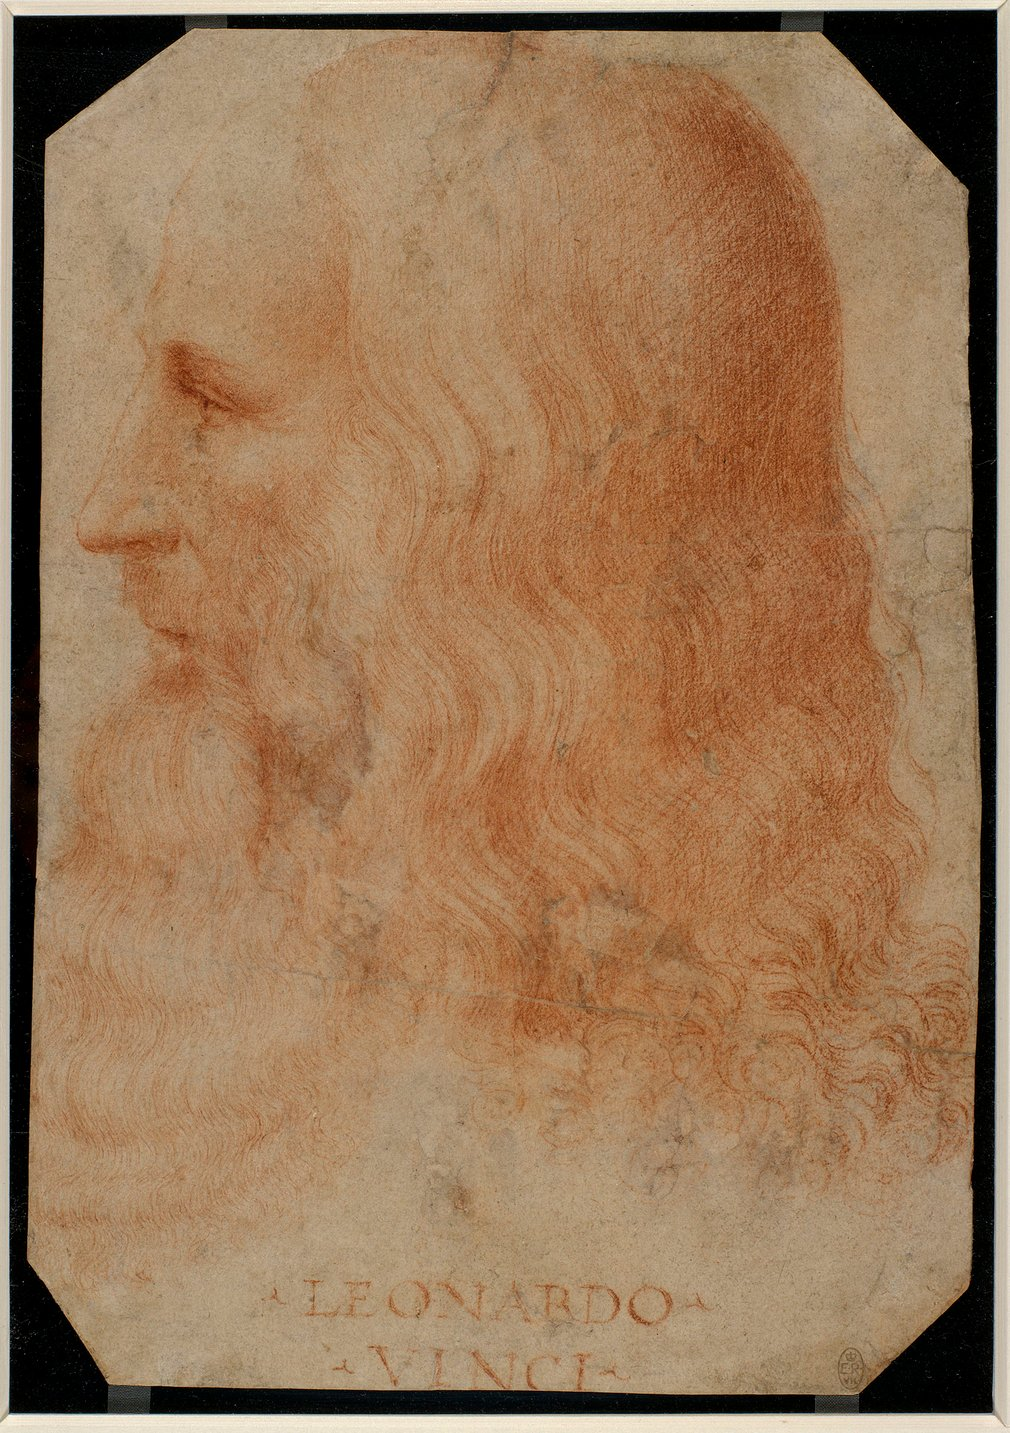 A portrait drawing of the head of Leonardo da Vinci, turned in profile to the left; with long wavy hair and a flowing beard.Inscribed below:LEONARDO/ VINCI.<br /><br />This is the only reliable surviving portrait of Leonardo da Vinci (14